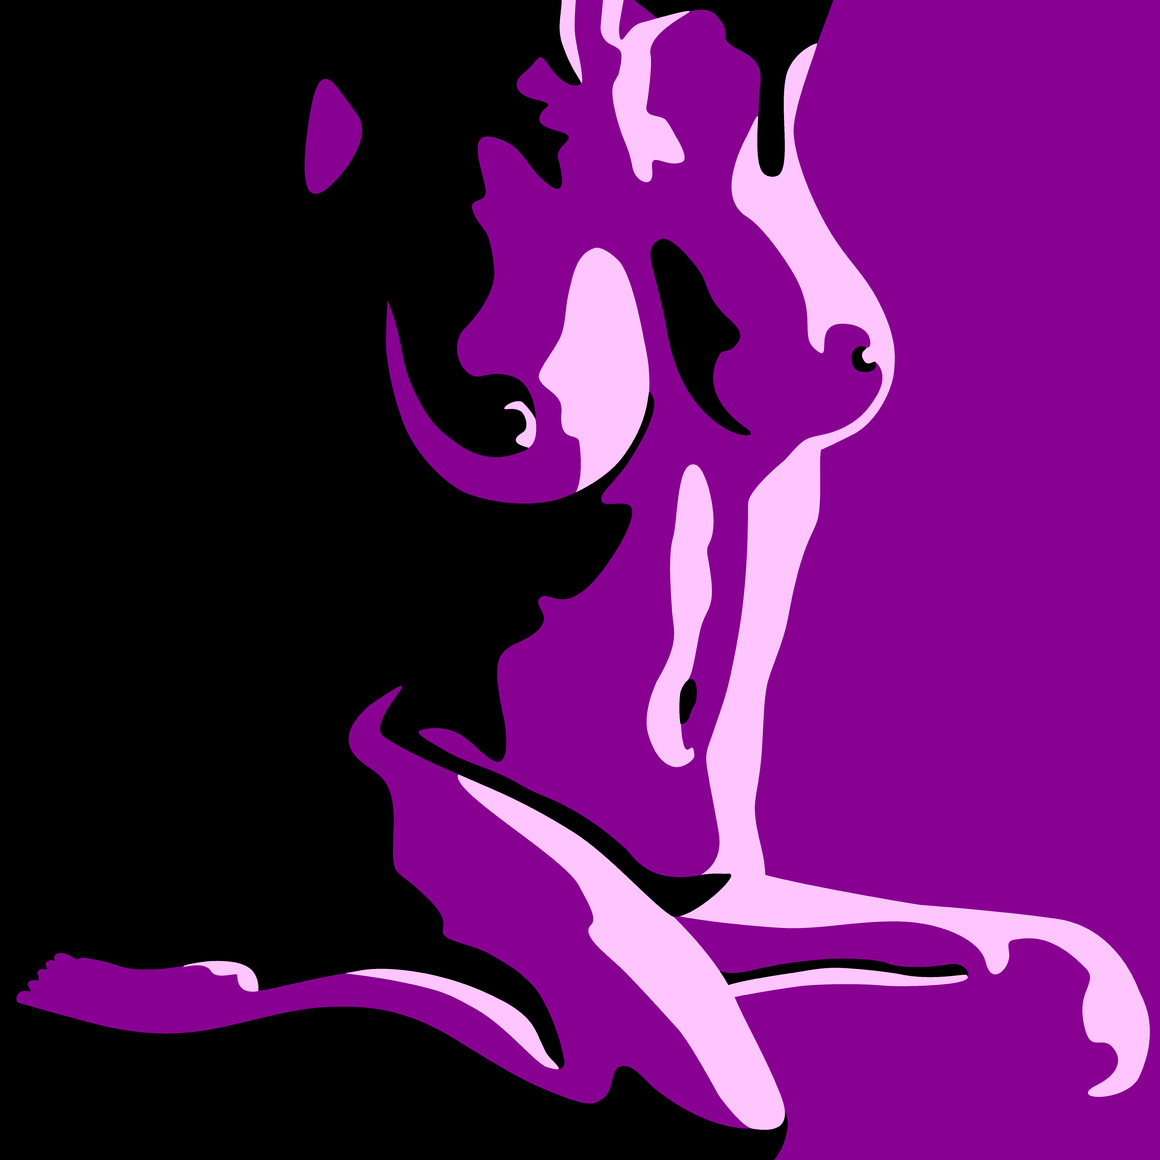 Nude Art Sitting Female - Black and Violet